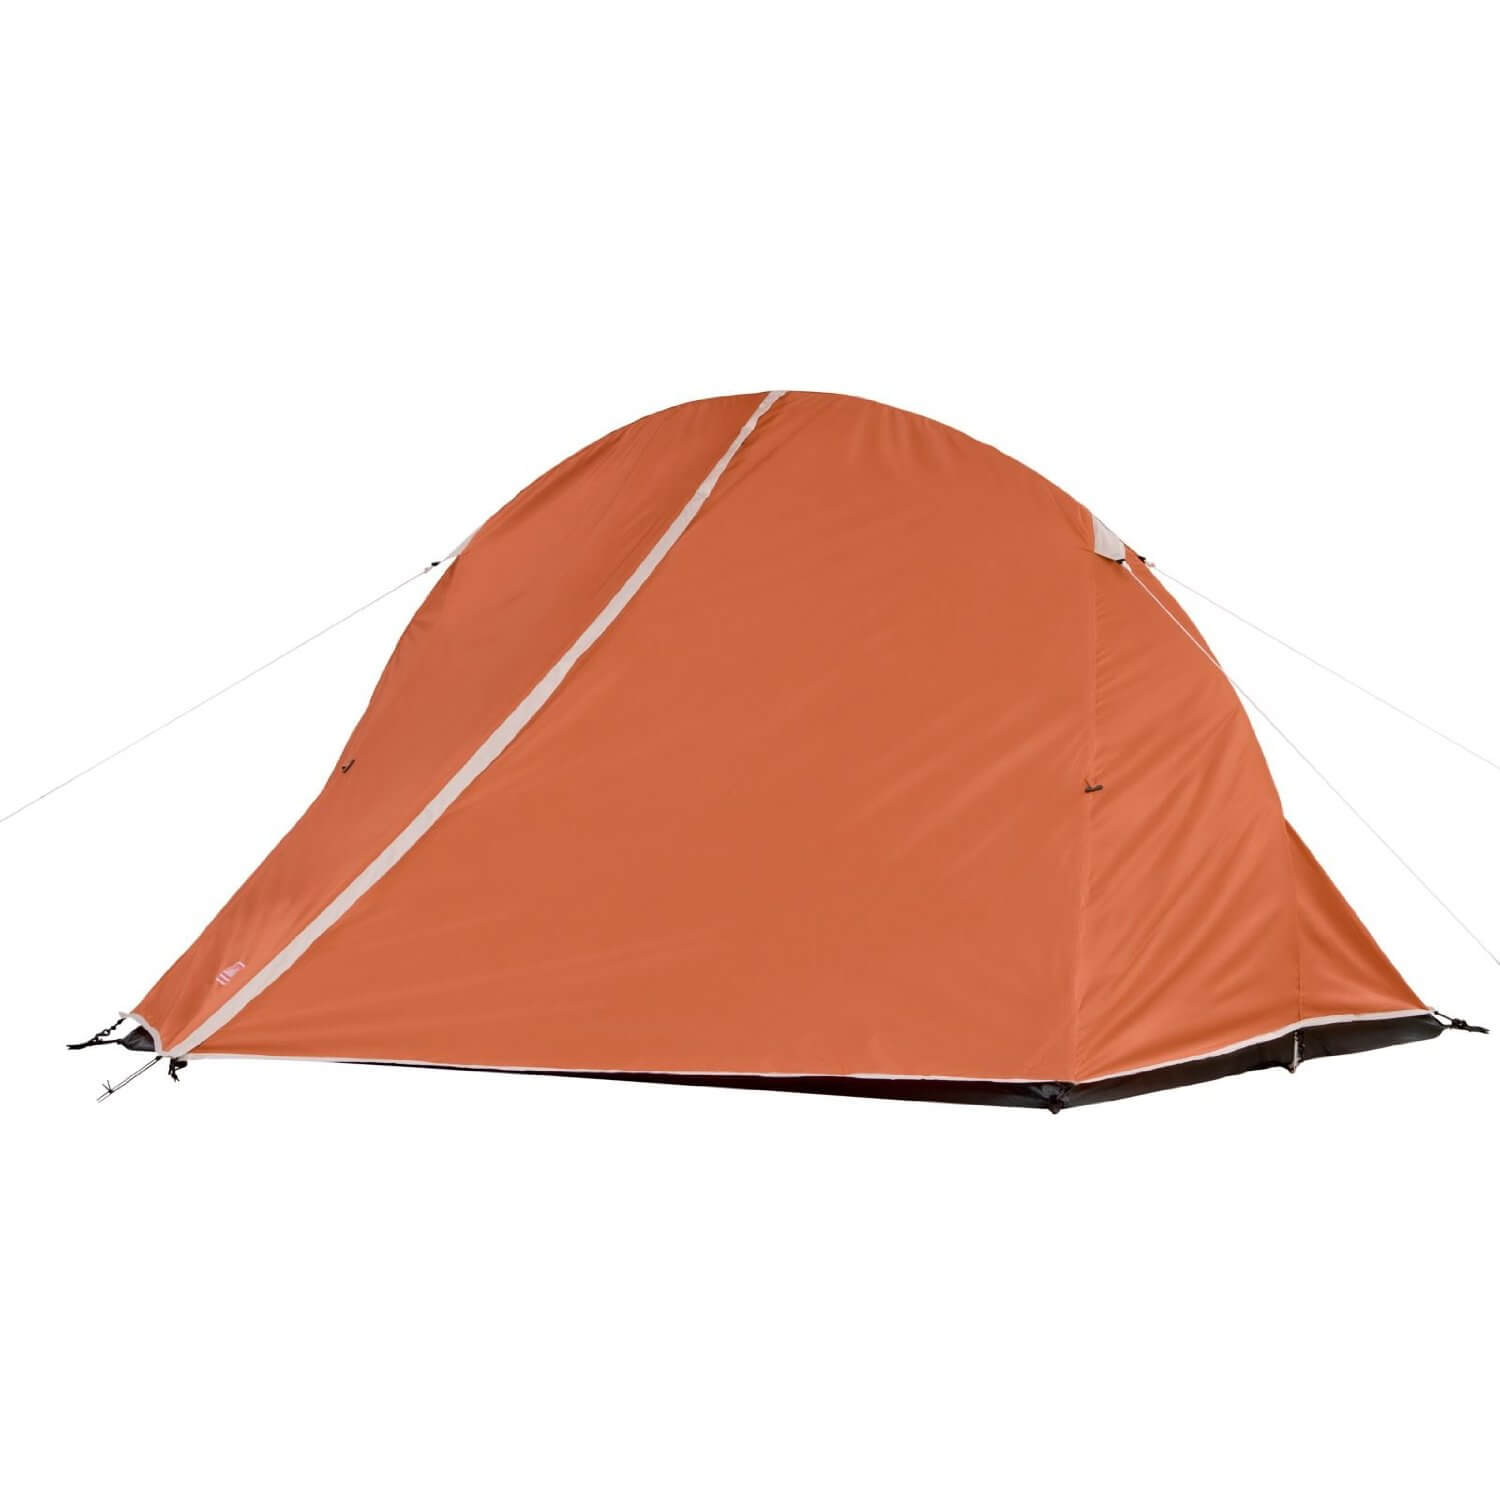 Best Camping Tents 2018 Camping Tent Reviews